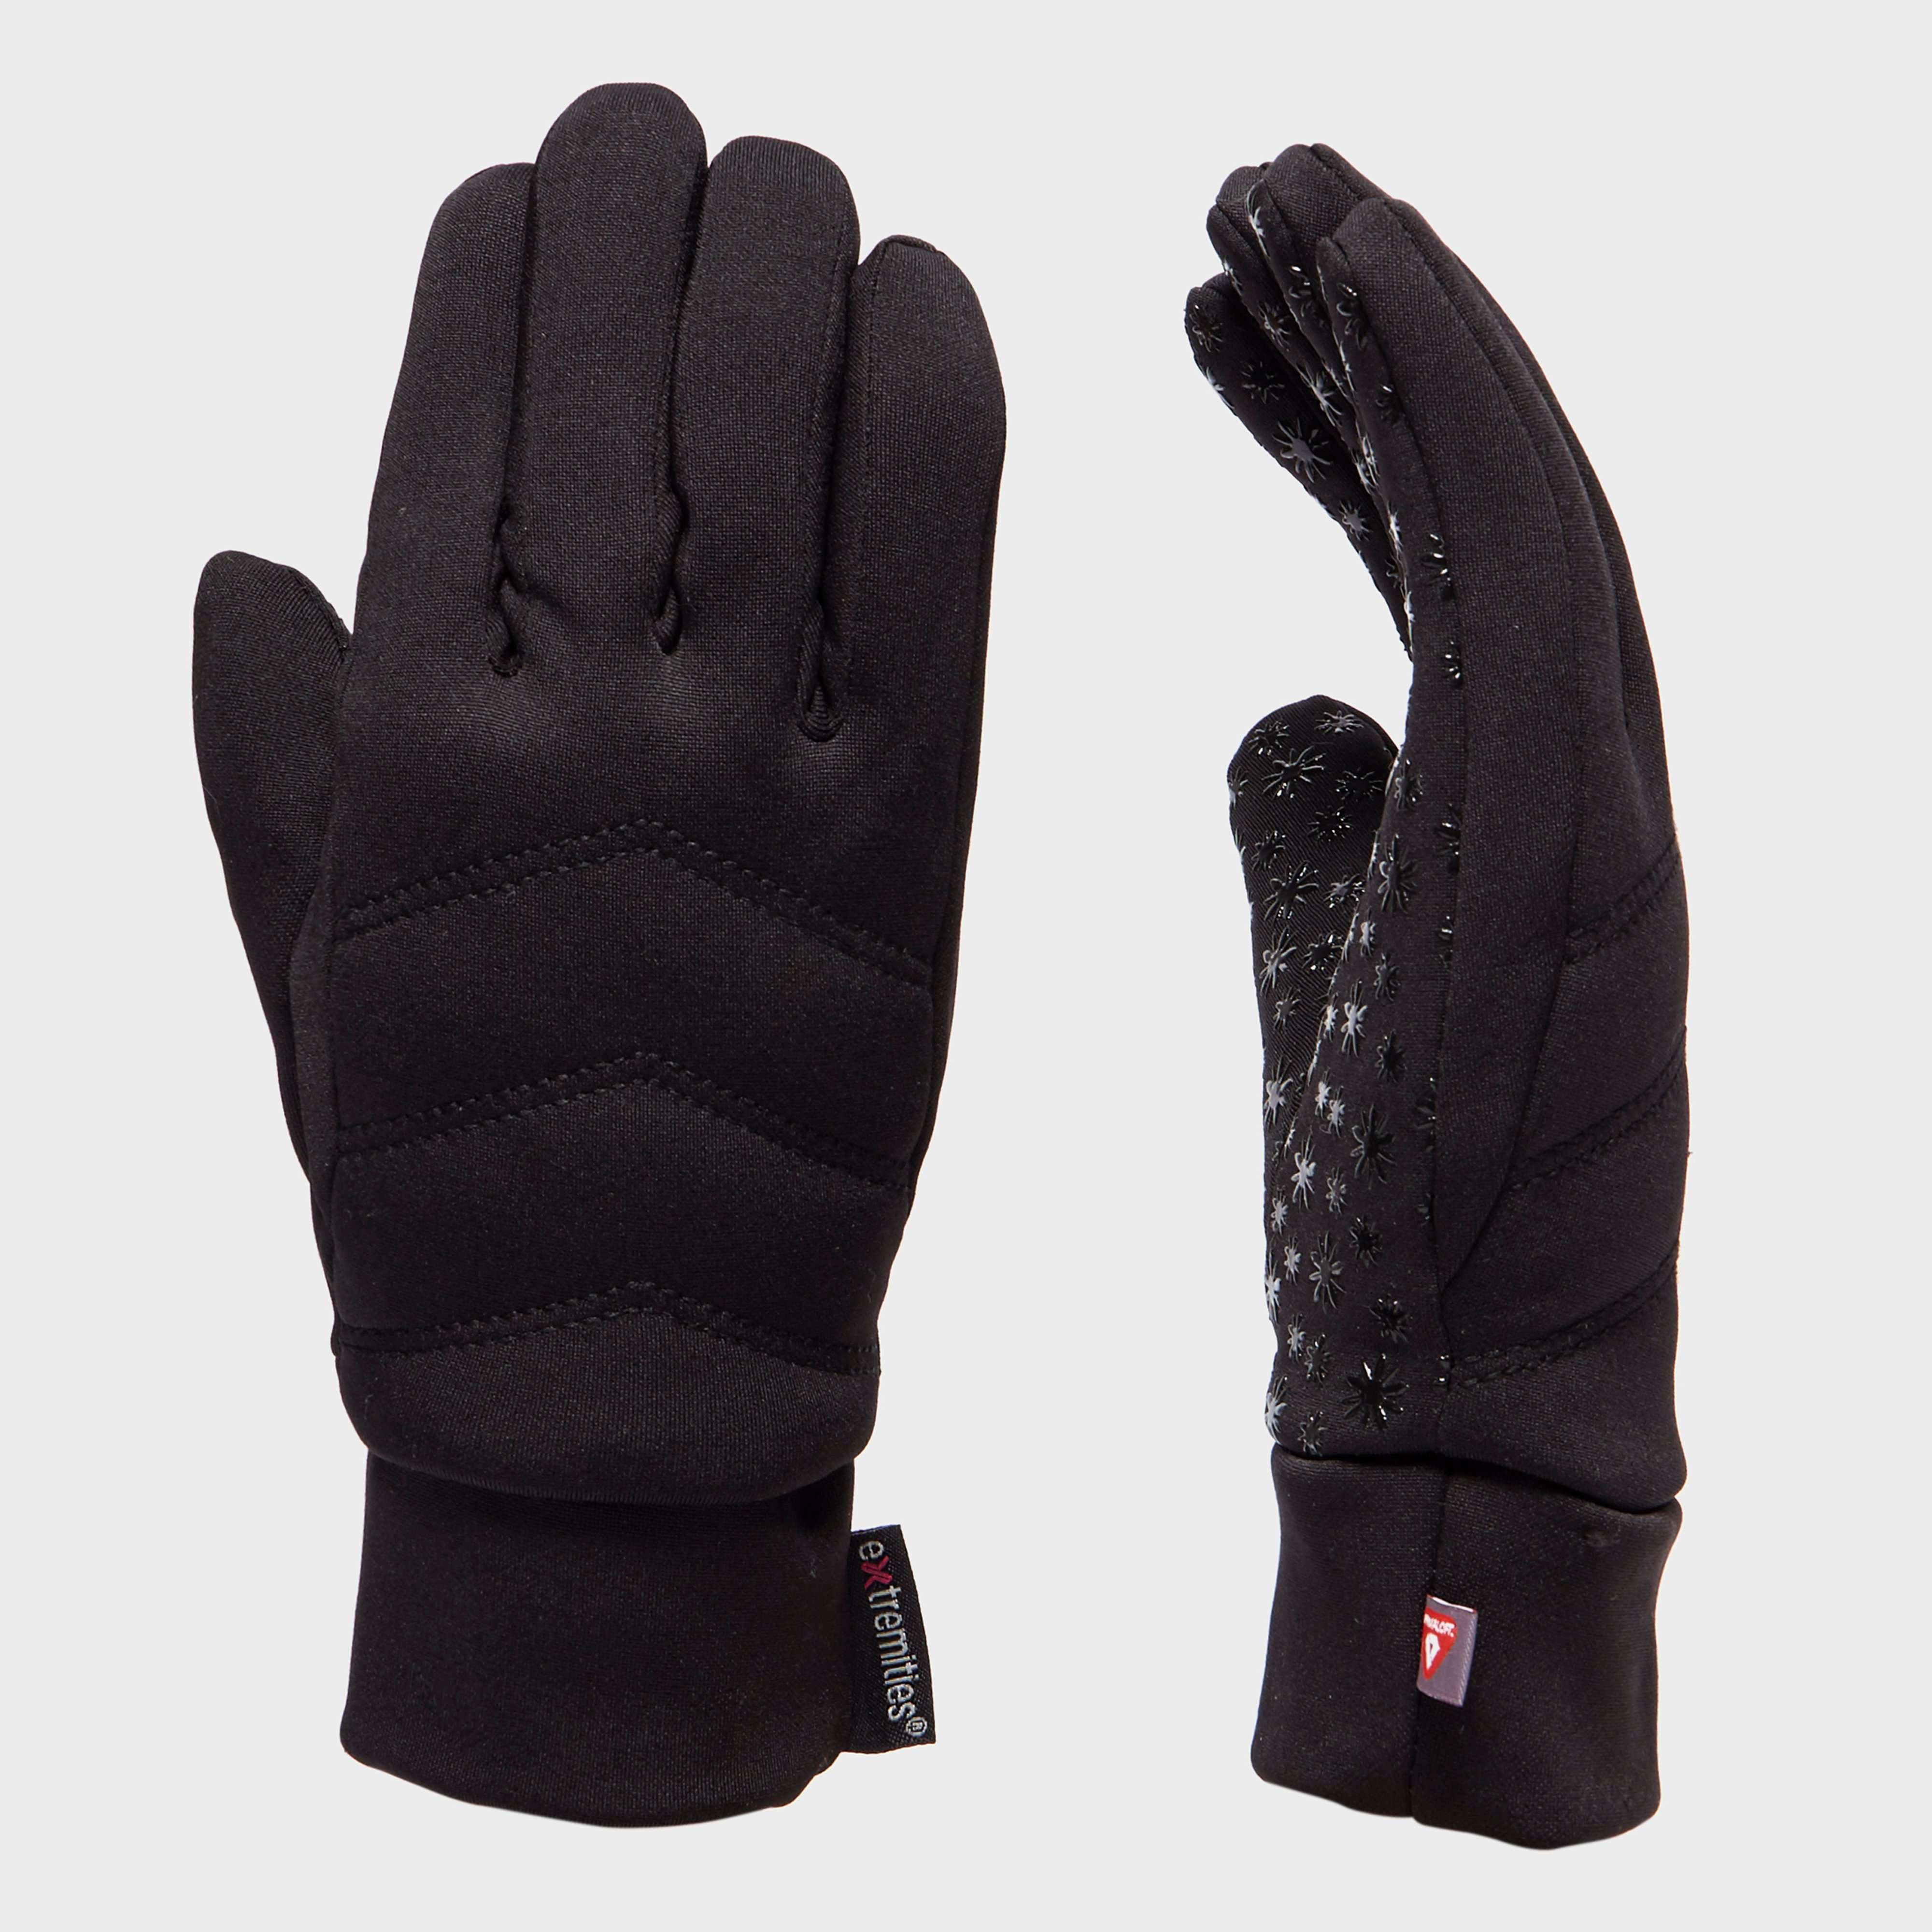 EXTREMITIES Women's Super Thicky Gloves